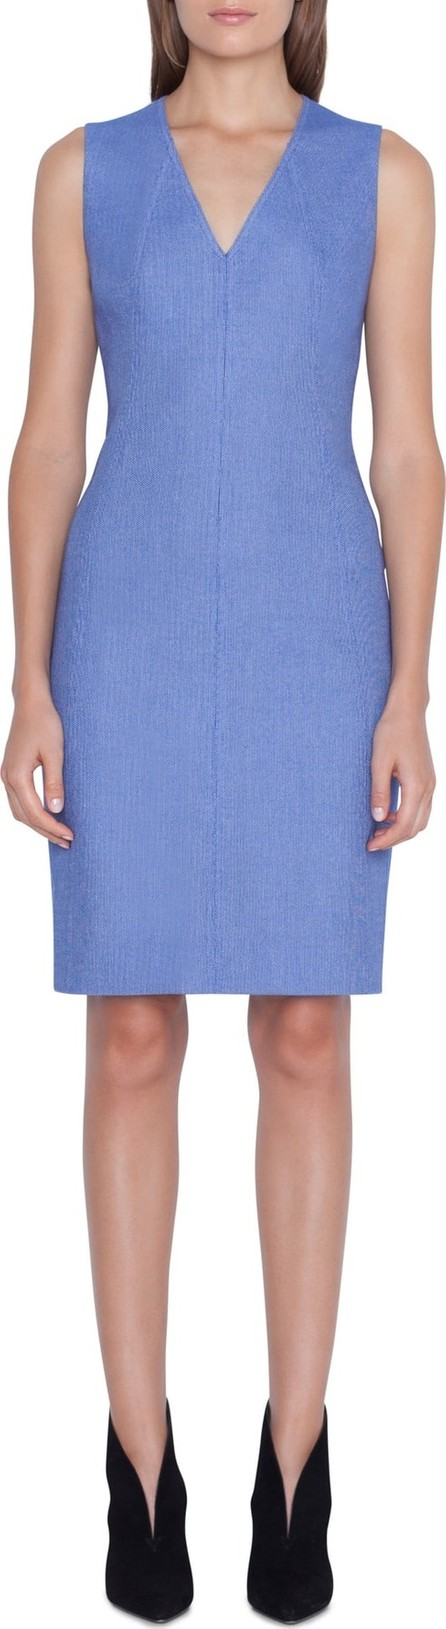 Akris Piqué Seamed Sheath Dress